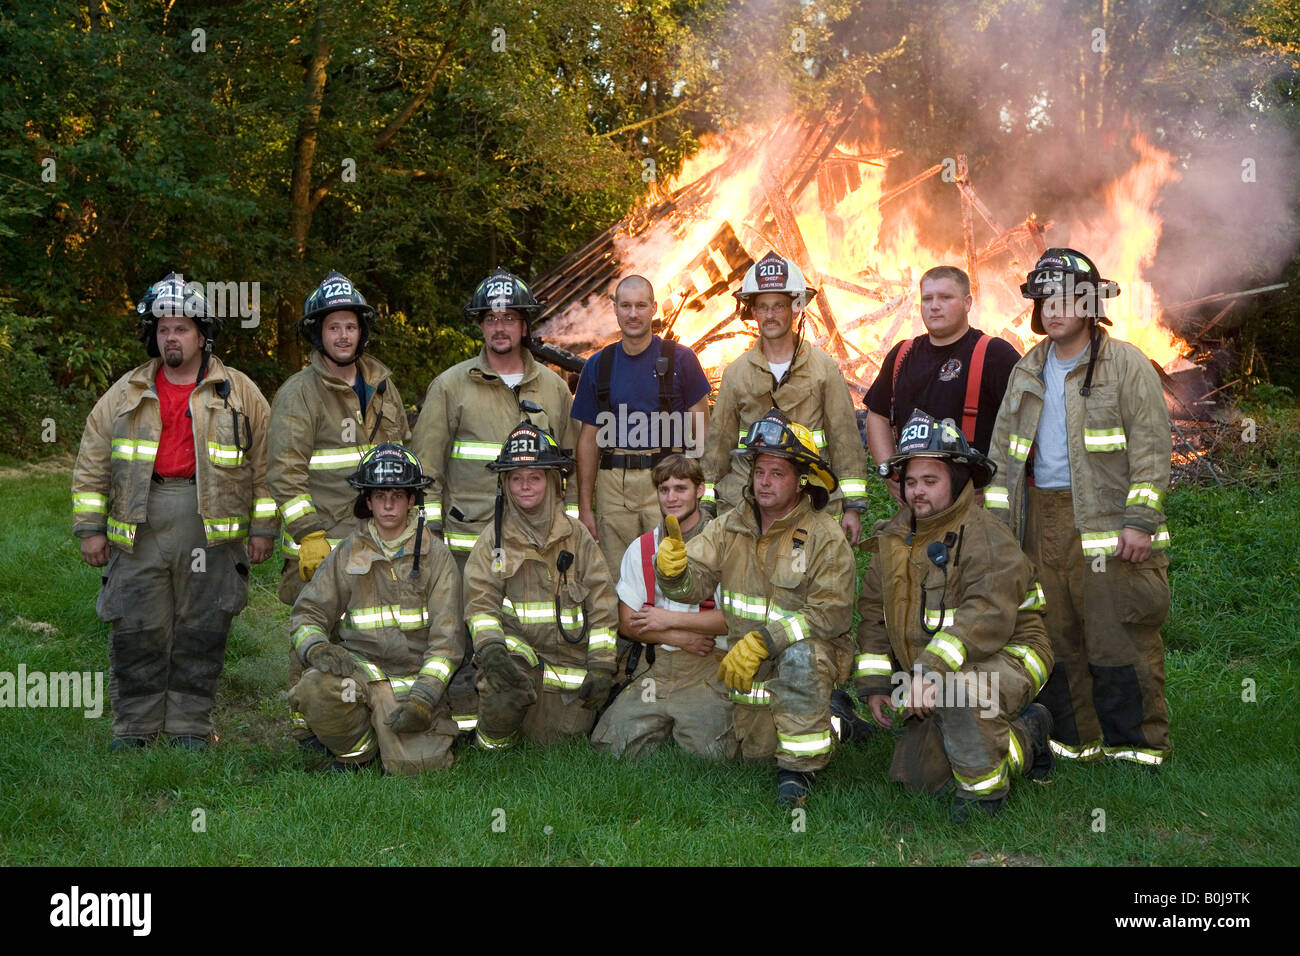 Volunteer Firefighters - Stock Image